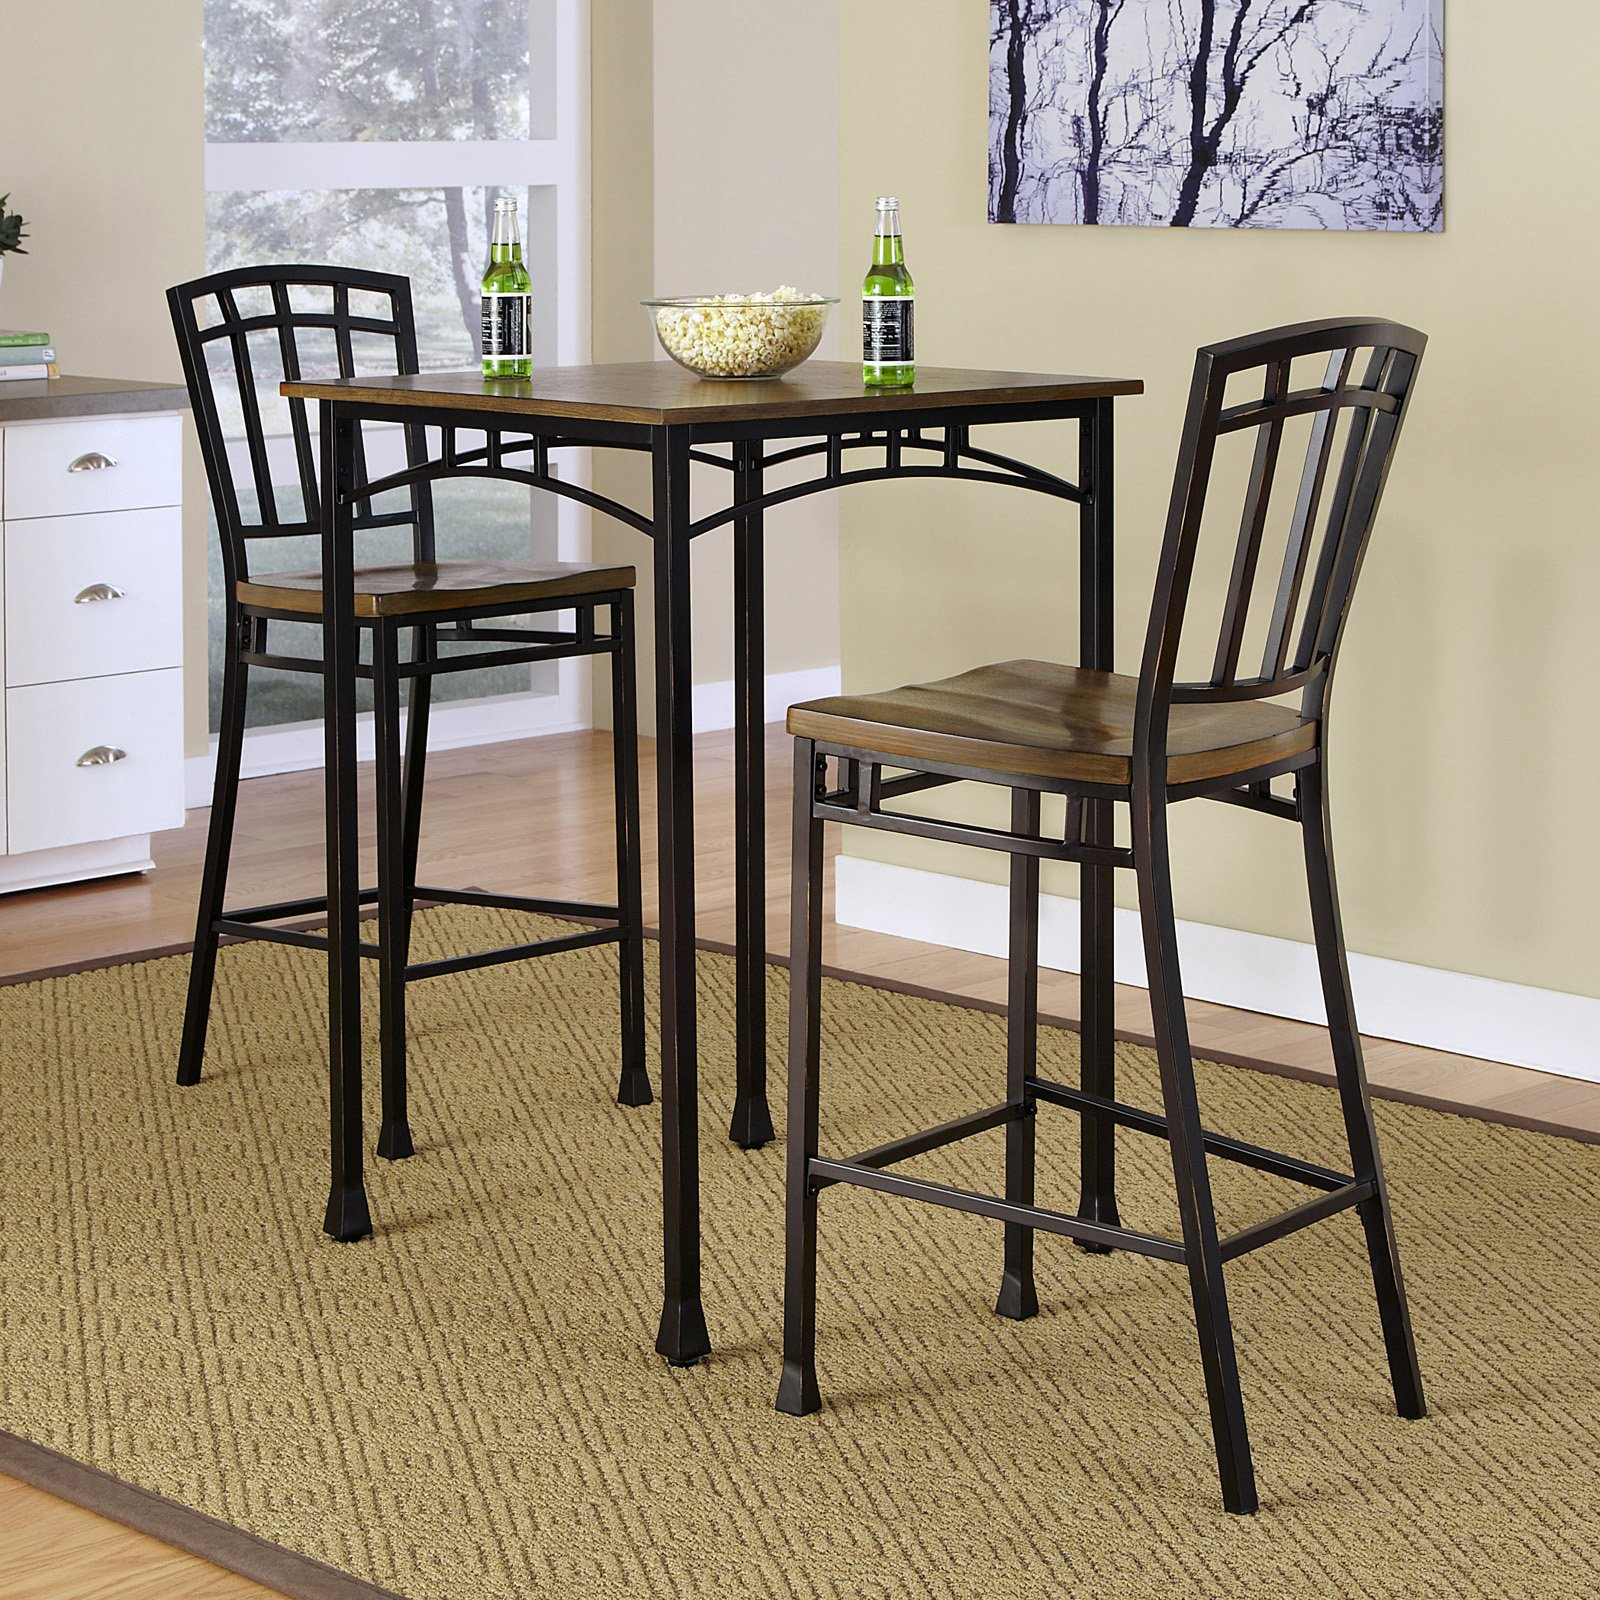 Home Styles Modern Craftsman 3-Piece Bistro Set, Brown - Walmart.com